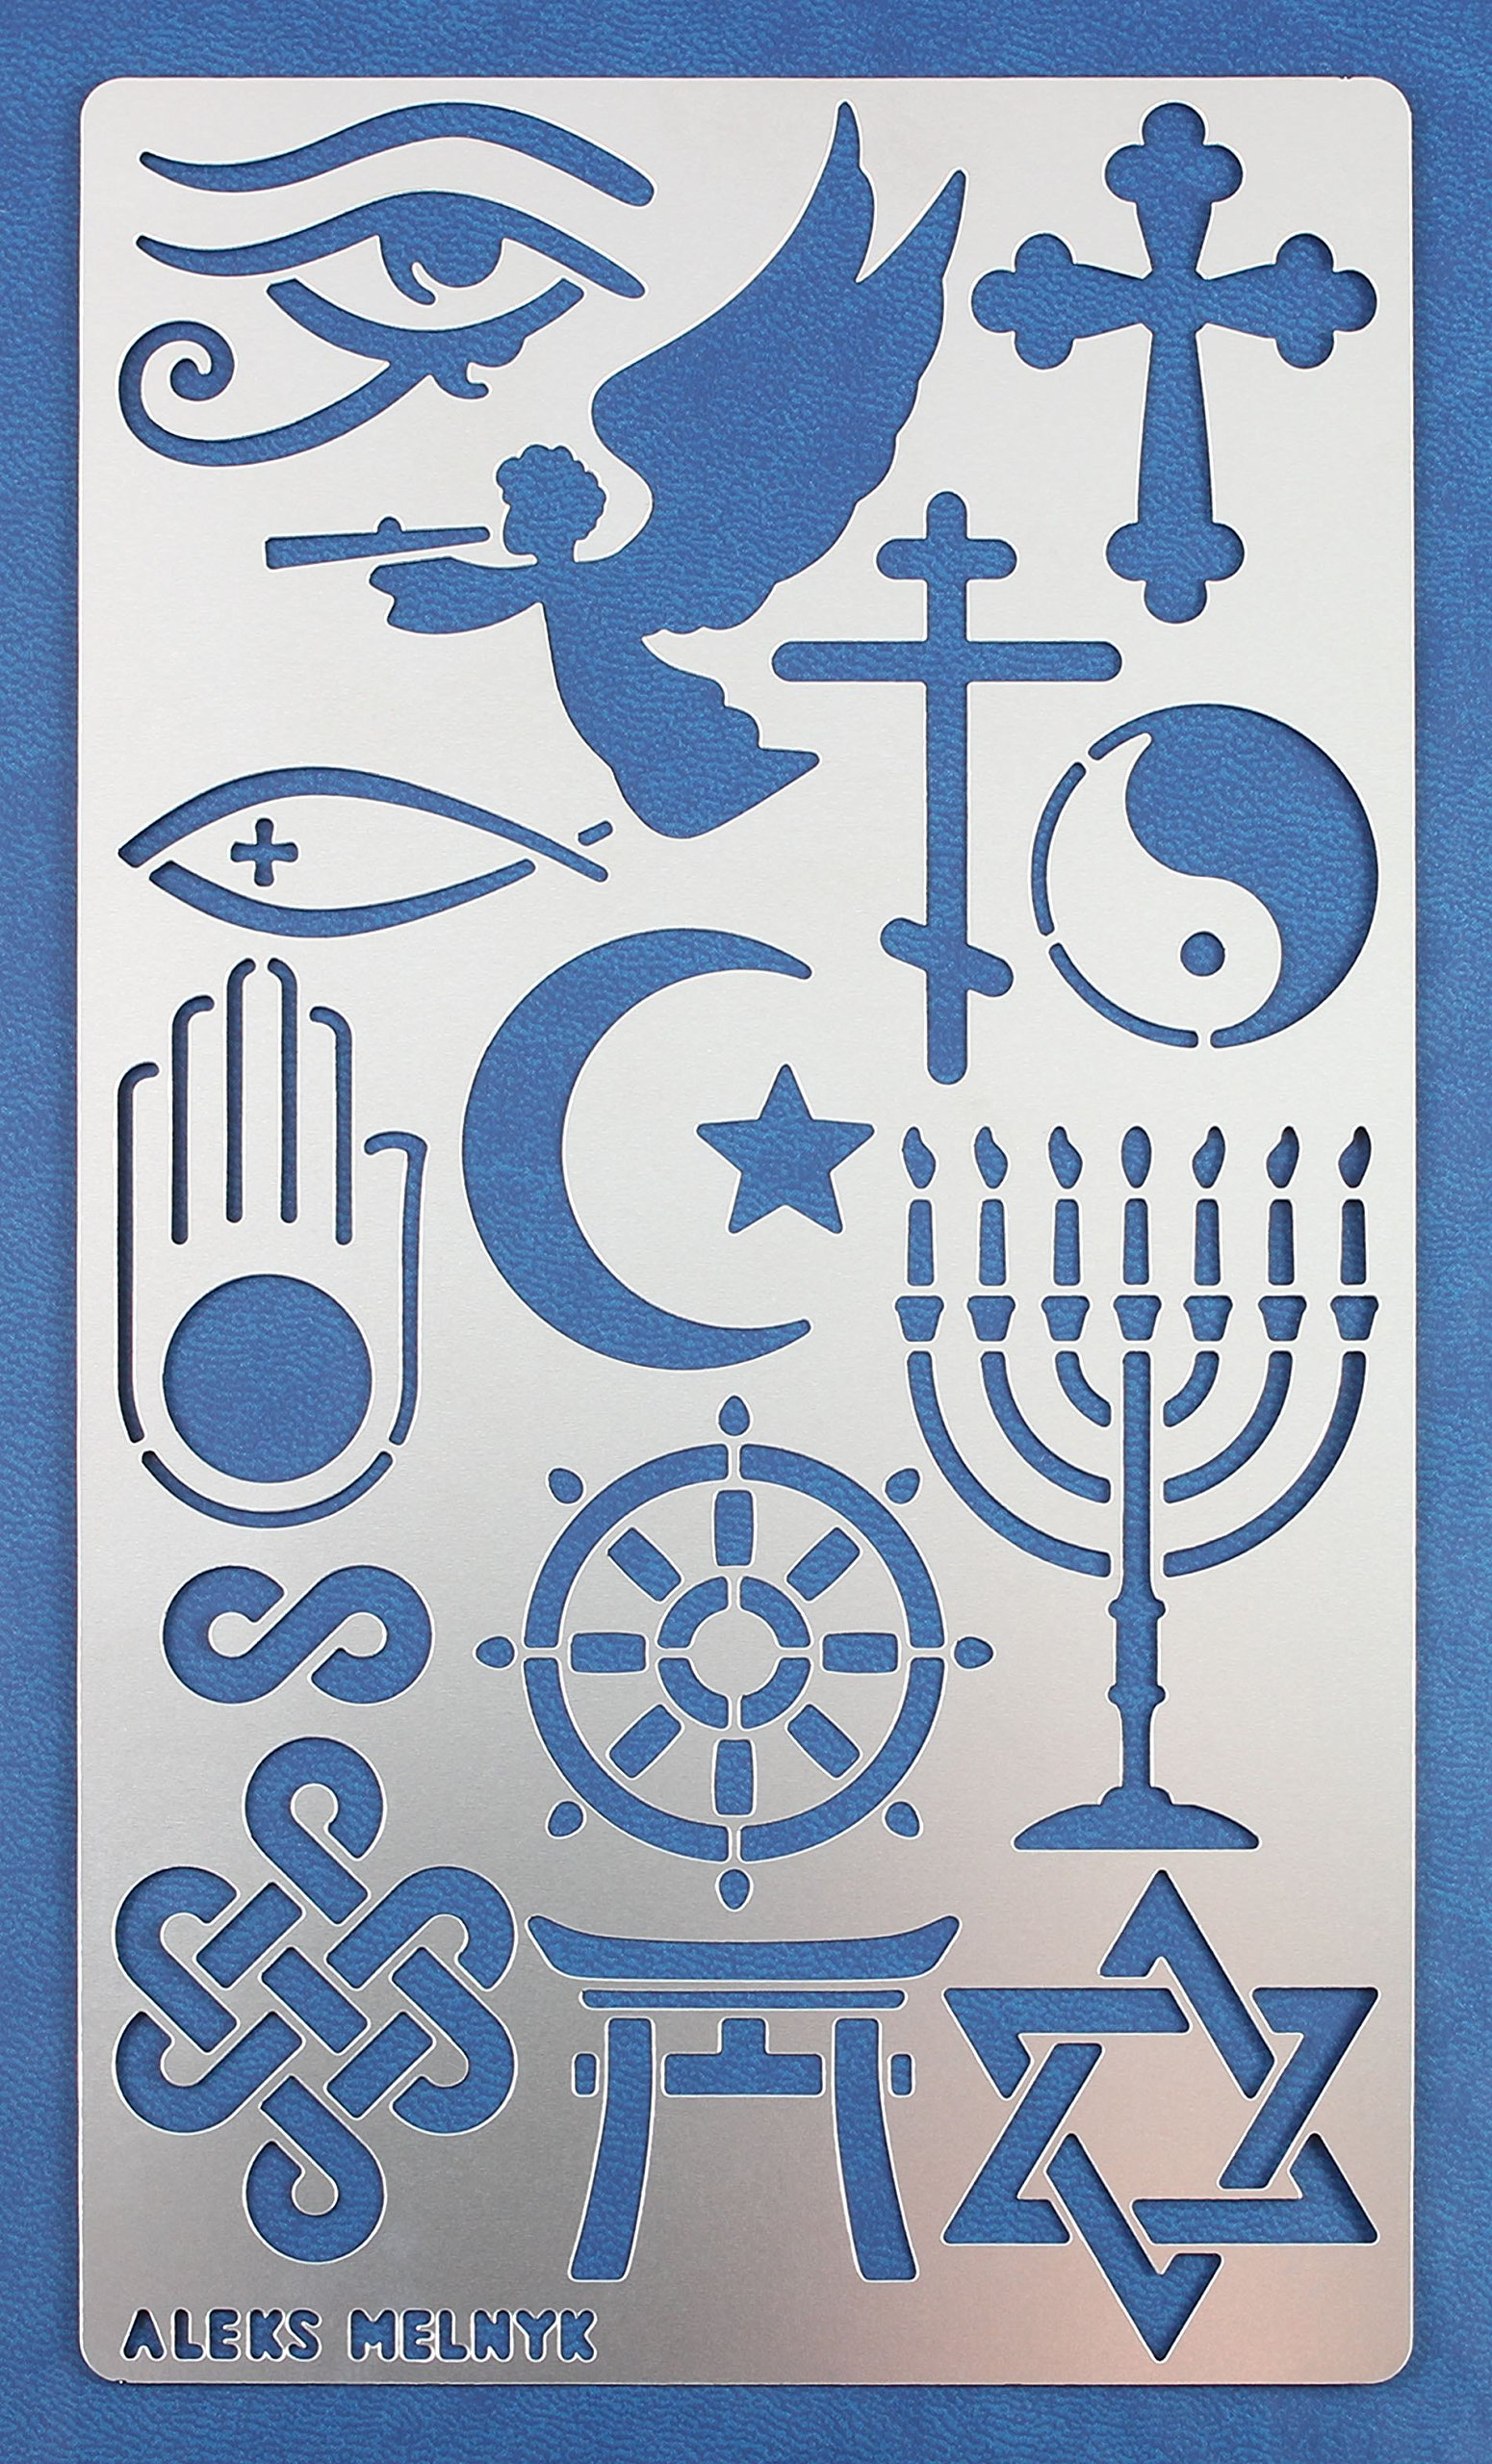 Aleks Melnyk #25 Metal Journal Stencil/Religion/Stainless Steel Stencil 1 PCS/Template Tool for Wood Burning, Pyrography and Engraving/Scrapbooking/Crafting/DIY